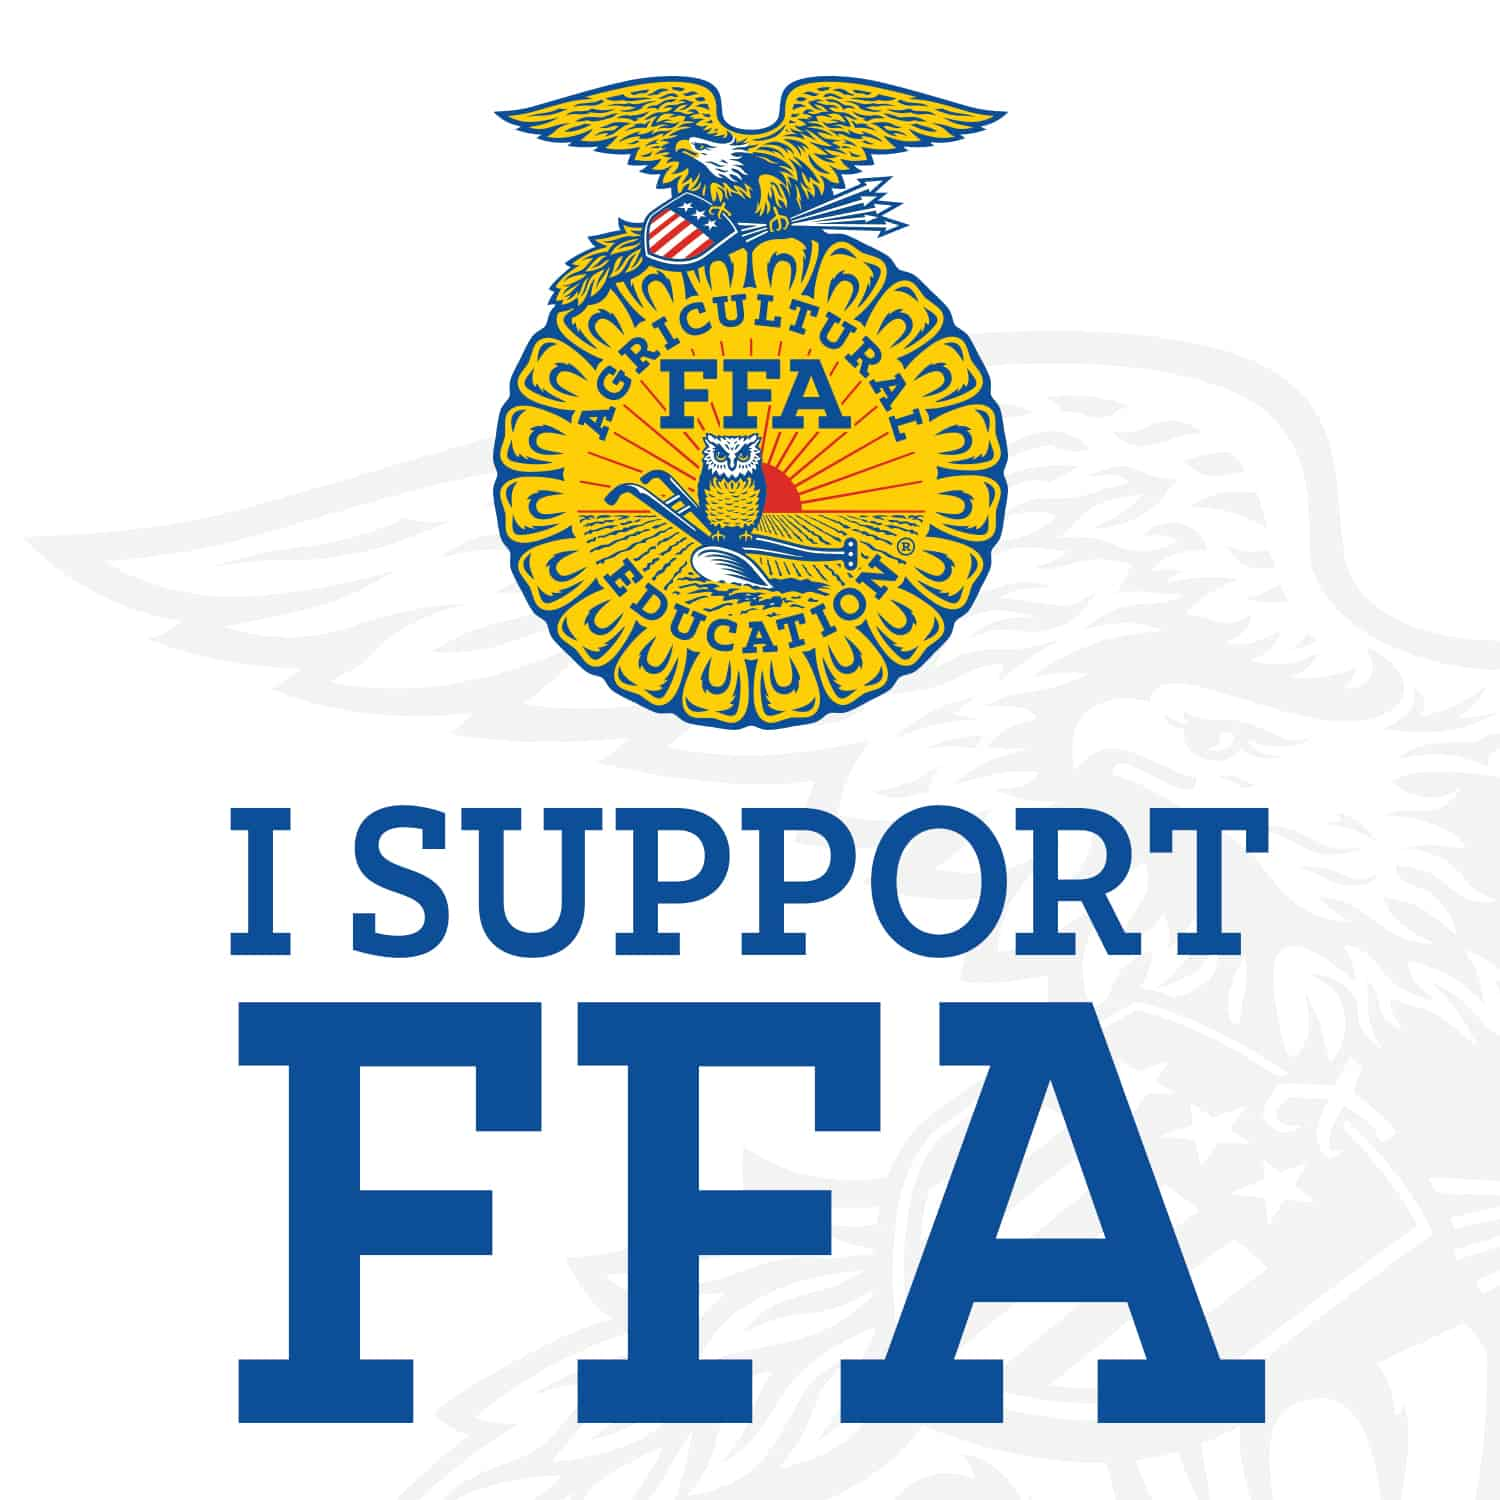 giveffaday_support_ffa_white_1500x1500